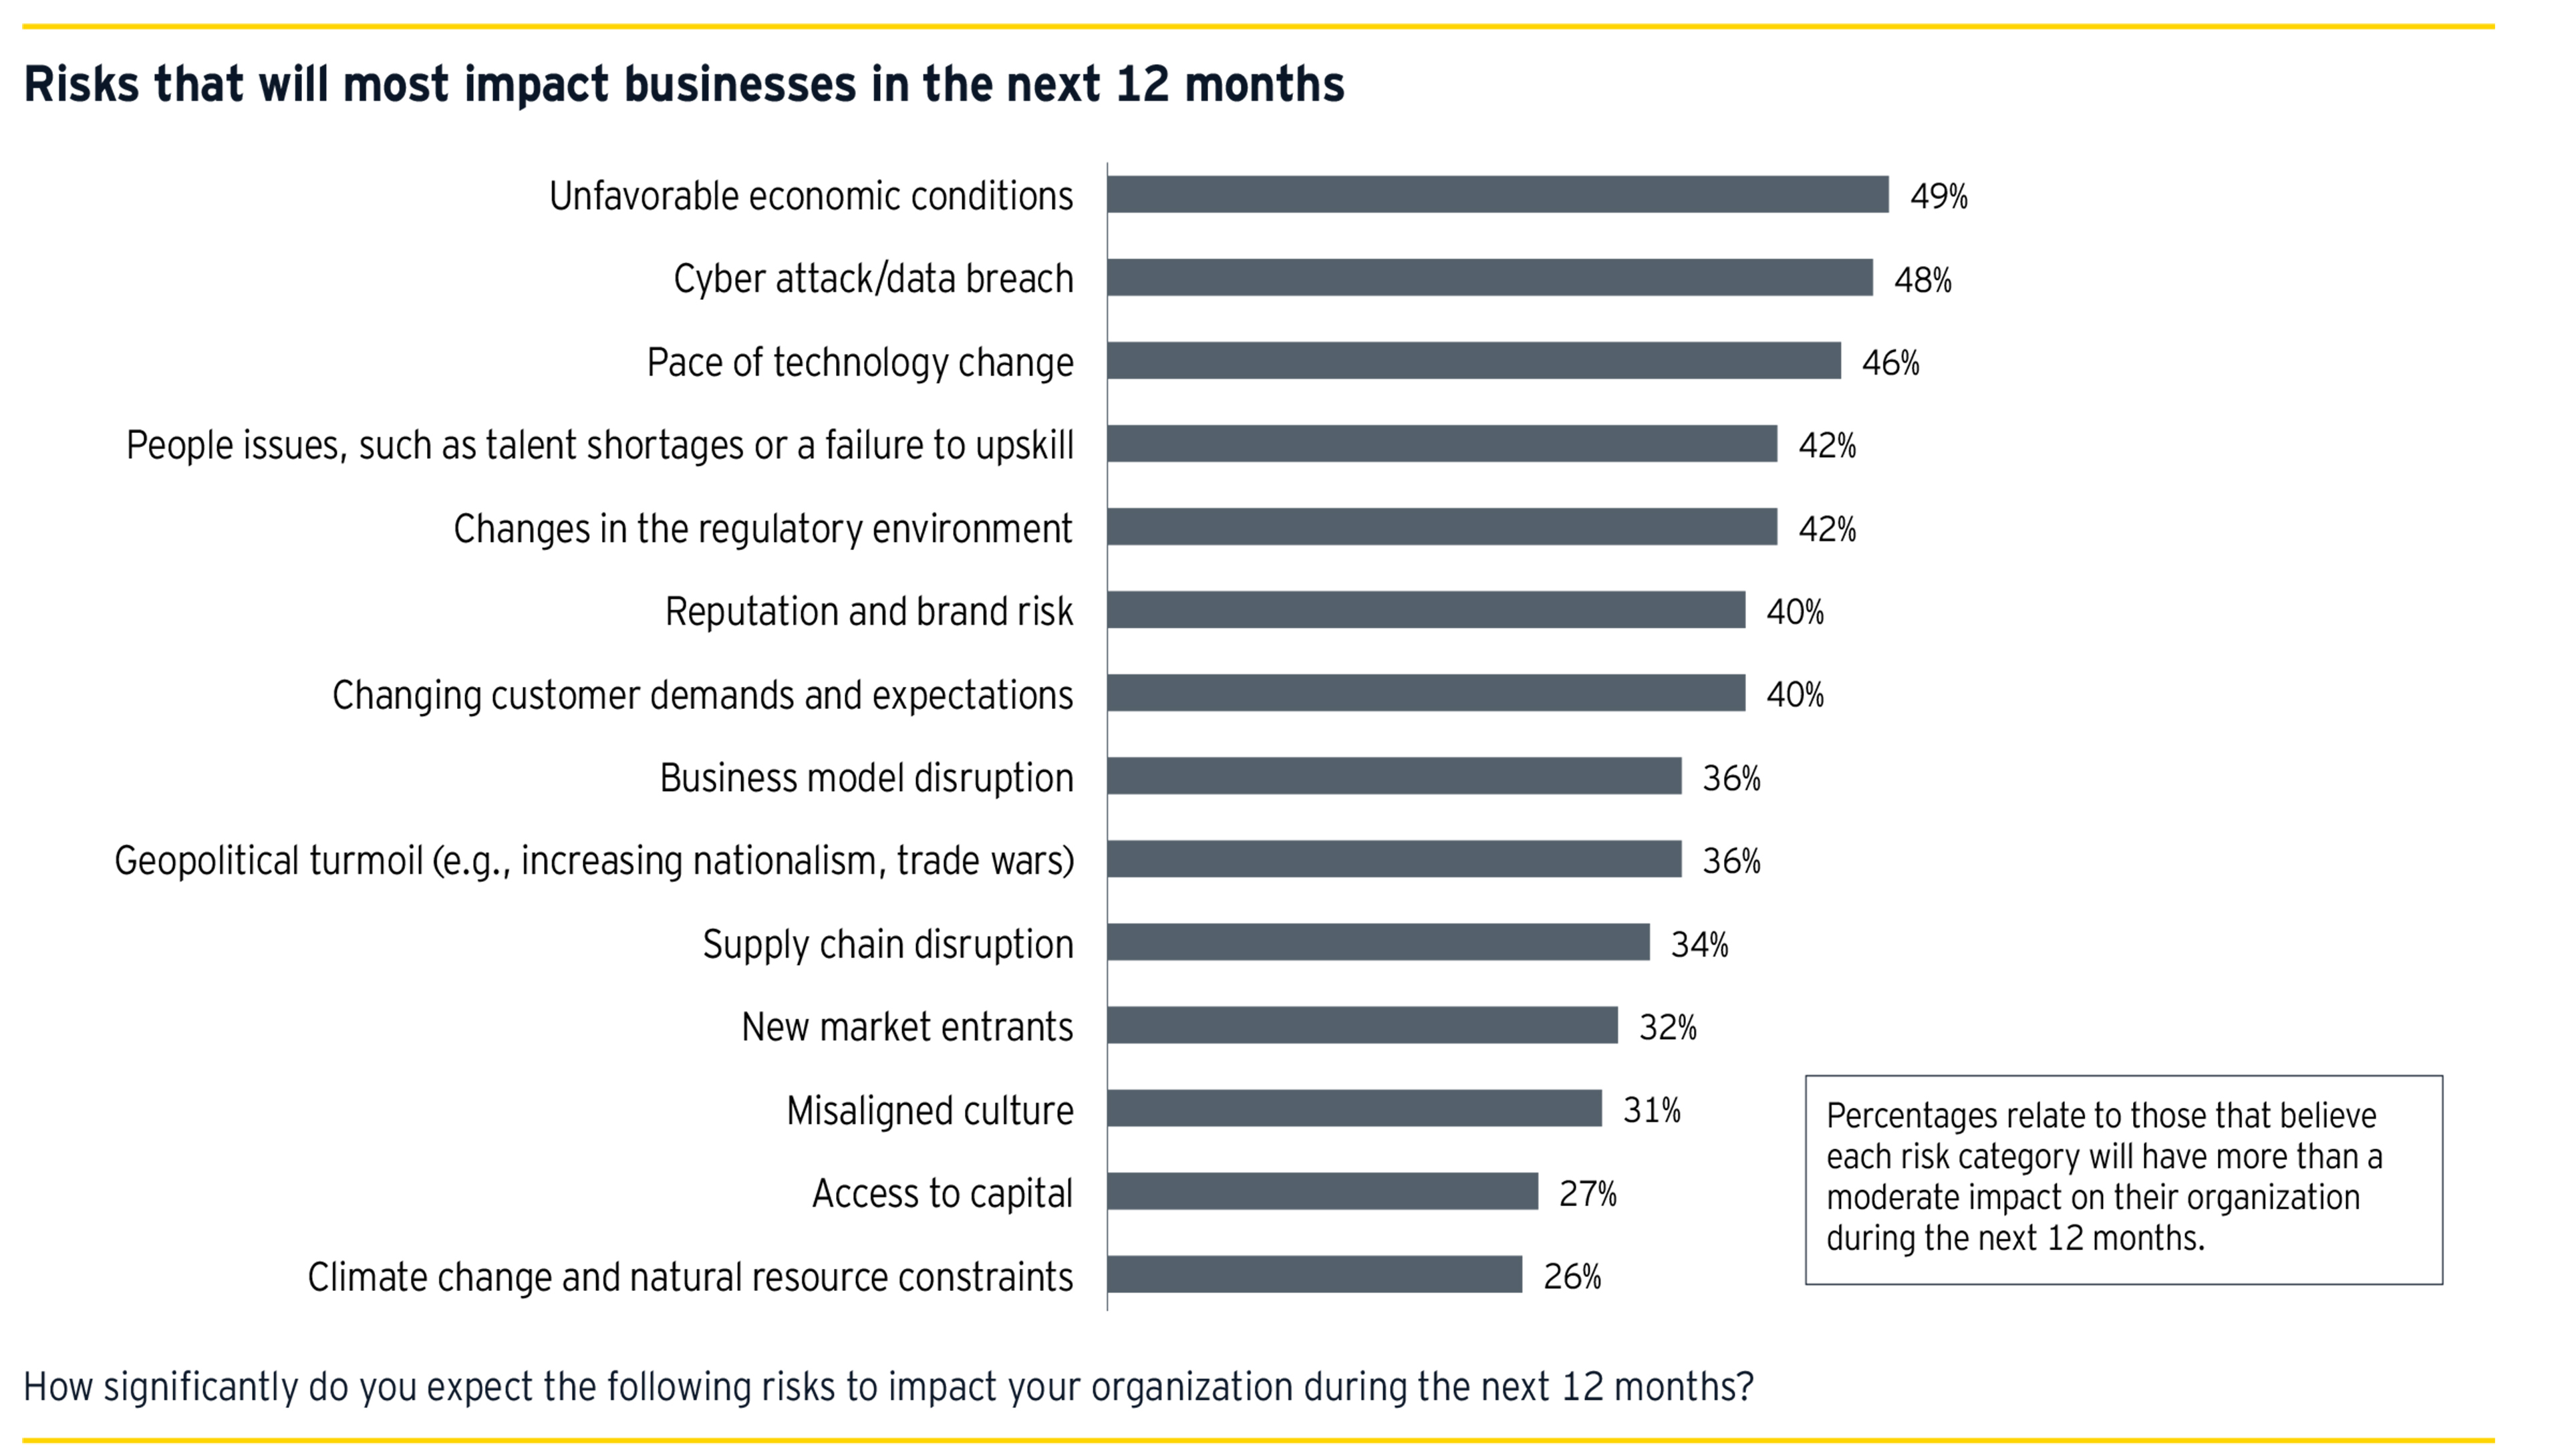 Risks that will most impact businesses in the next 12 months